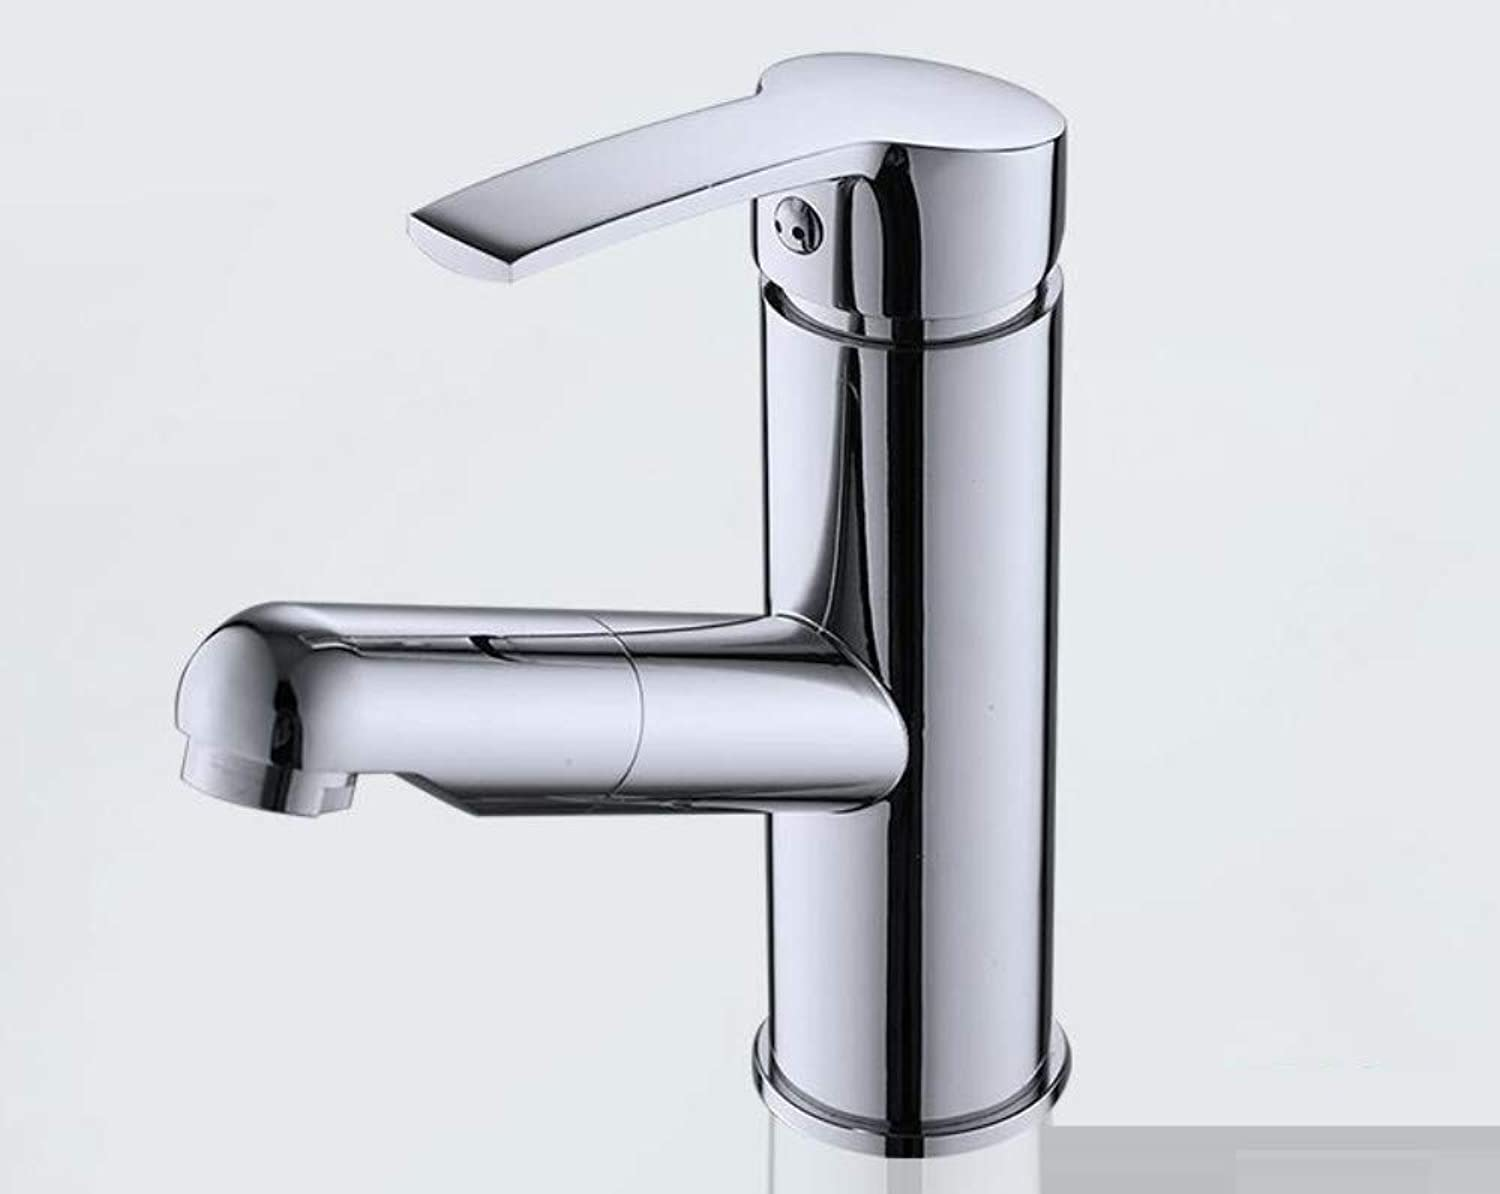 Wash Basin Lavatory Brass hot and Cold Telescopic Pull Faucet redating Kitchen Faucet